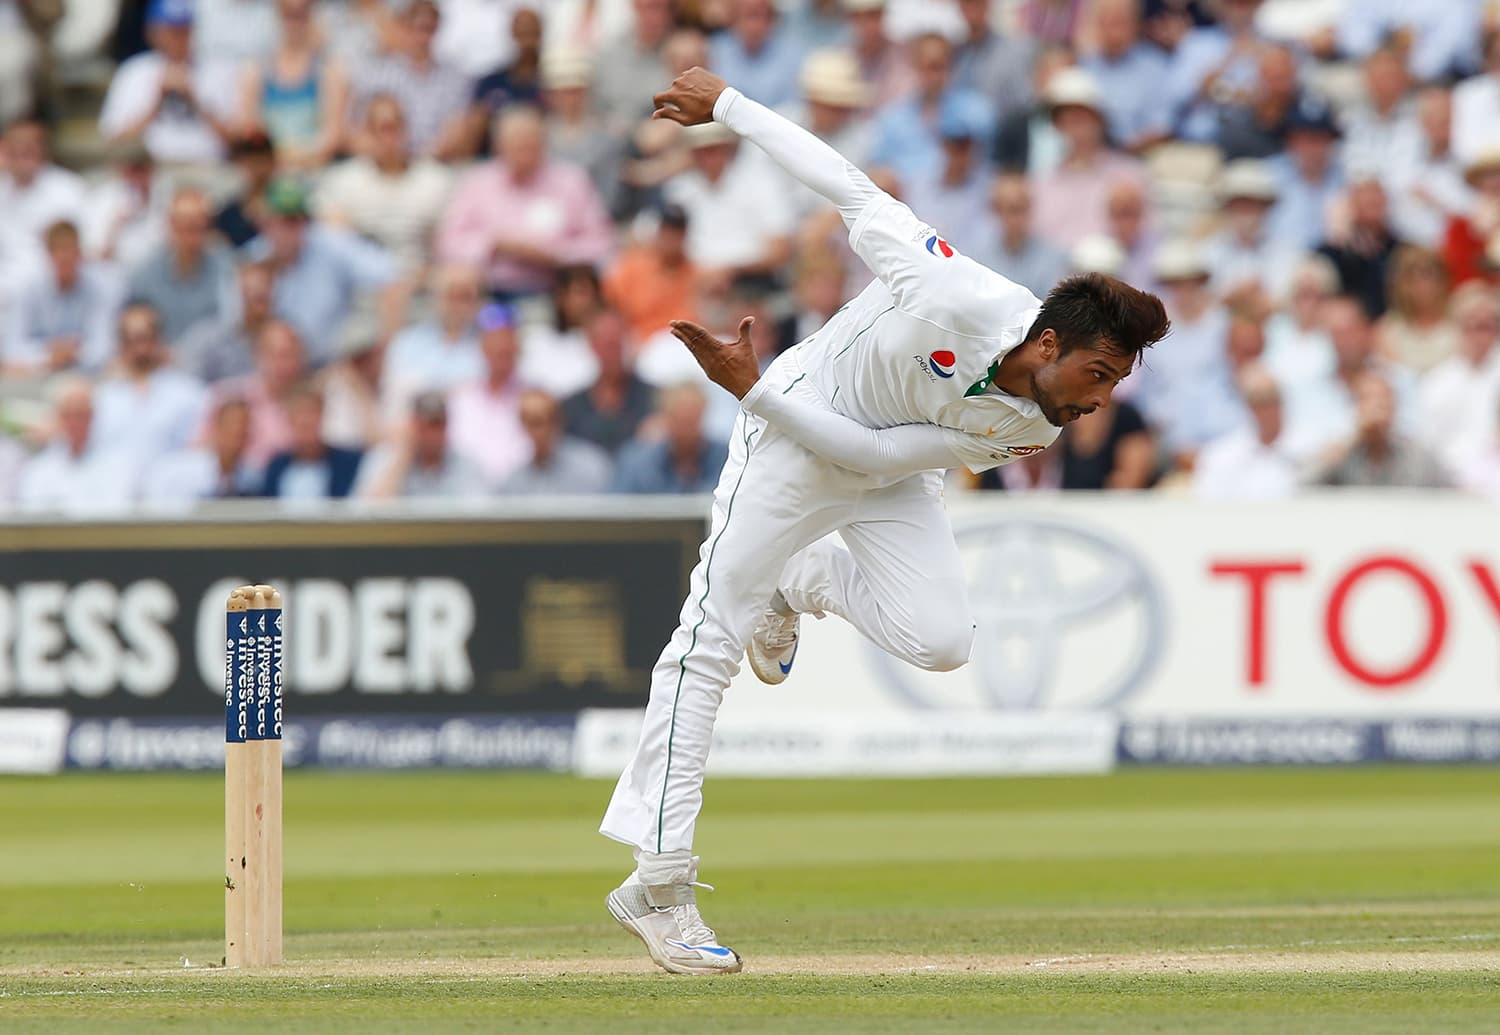 Pakistan's Mohammad Amir completes his run-up. — AFP